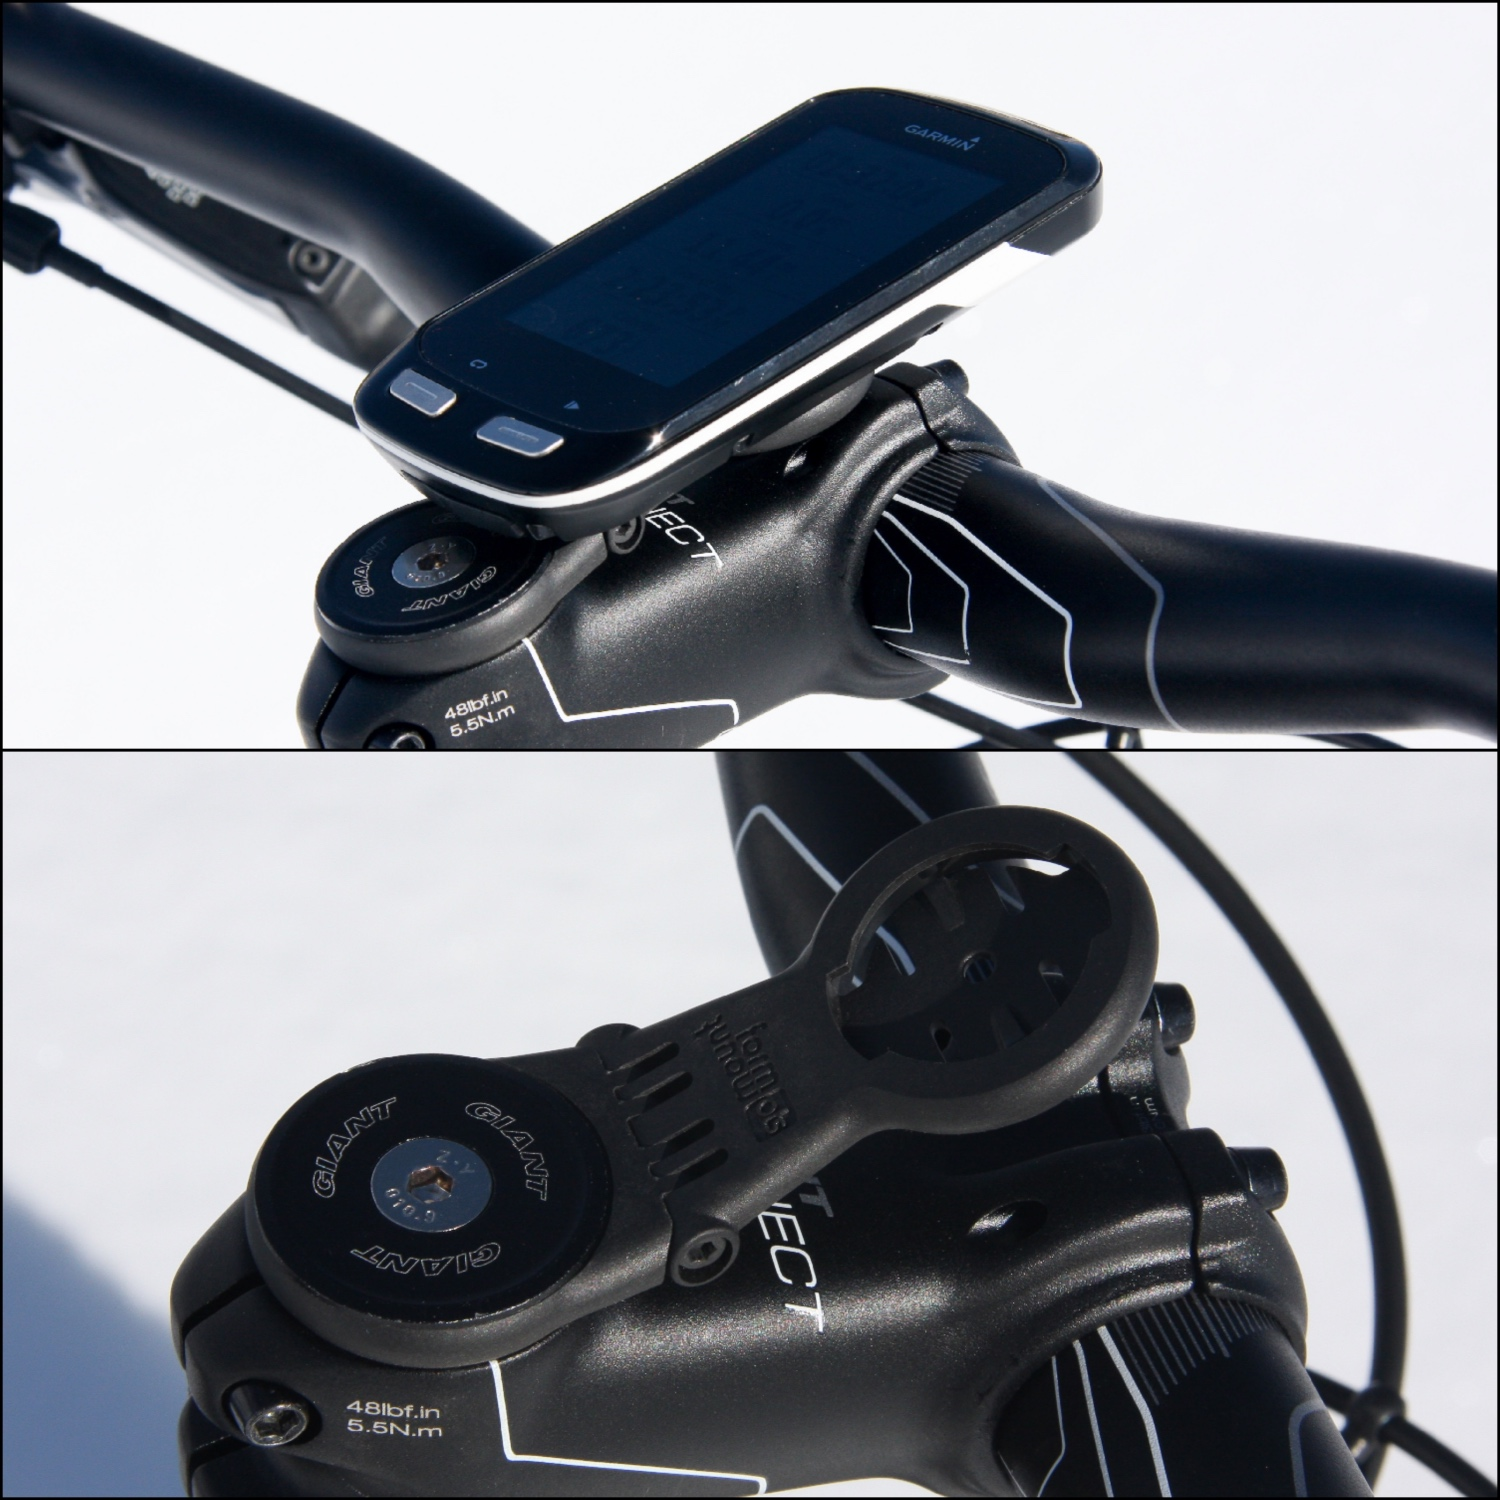 This 13-gram carbon fiber device holder provides an easy solution for riders who prefer an over-the-stem mount. Photos by Jason Sumner